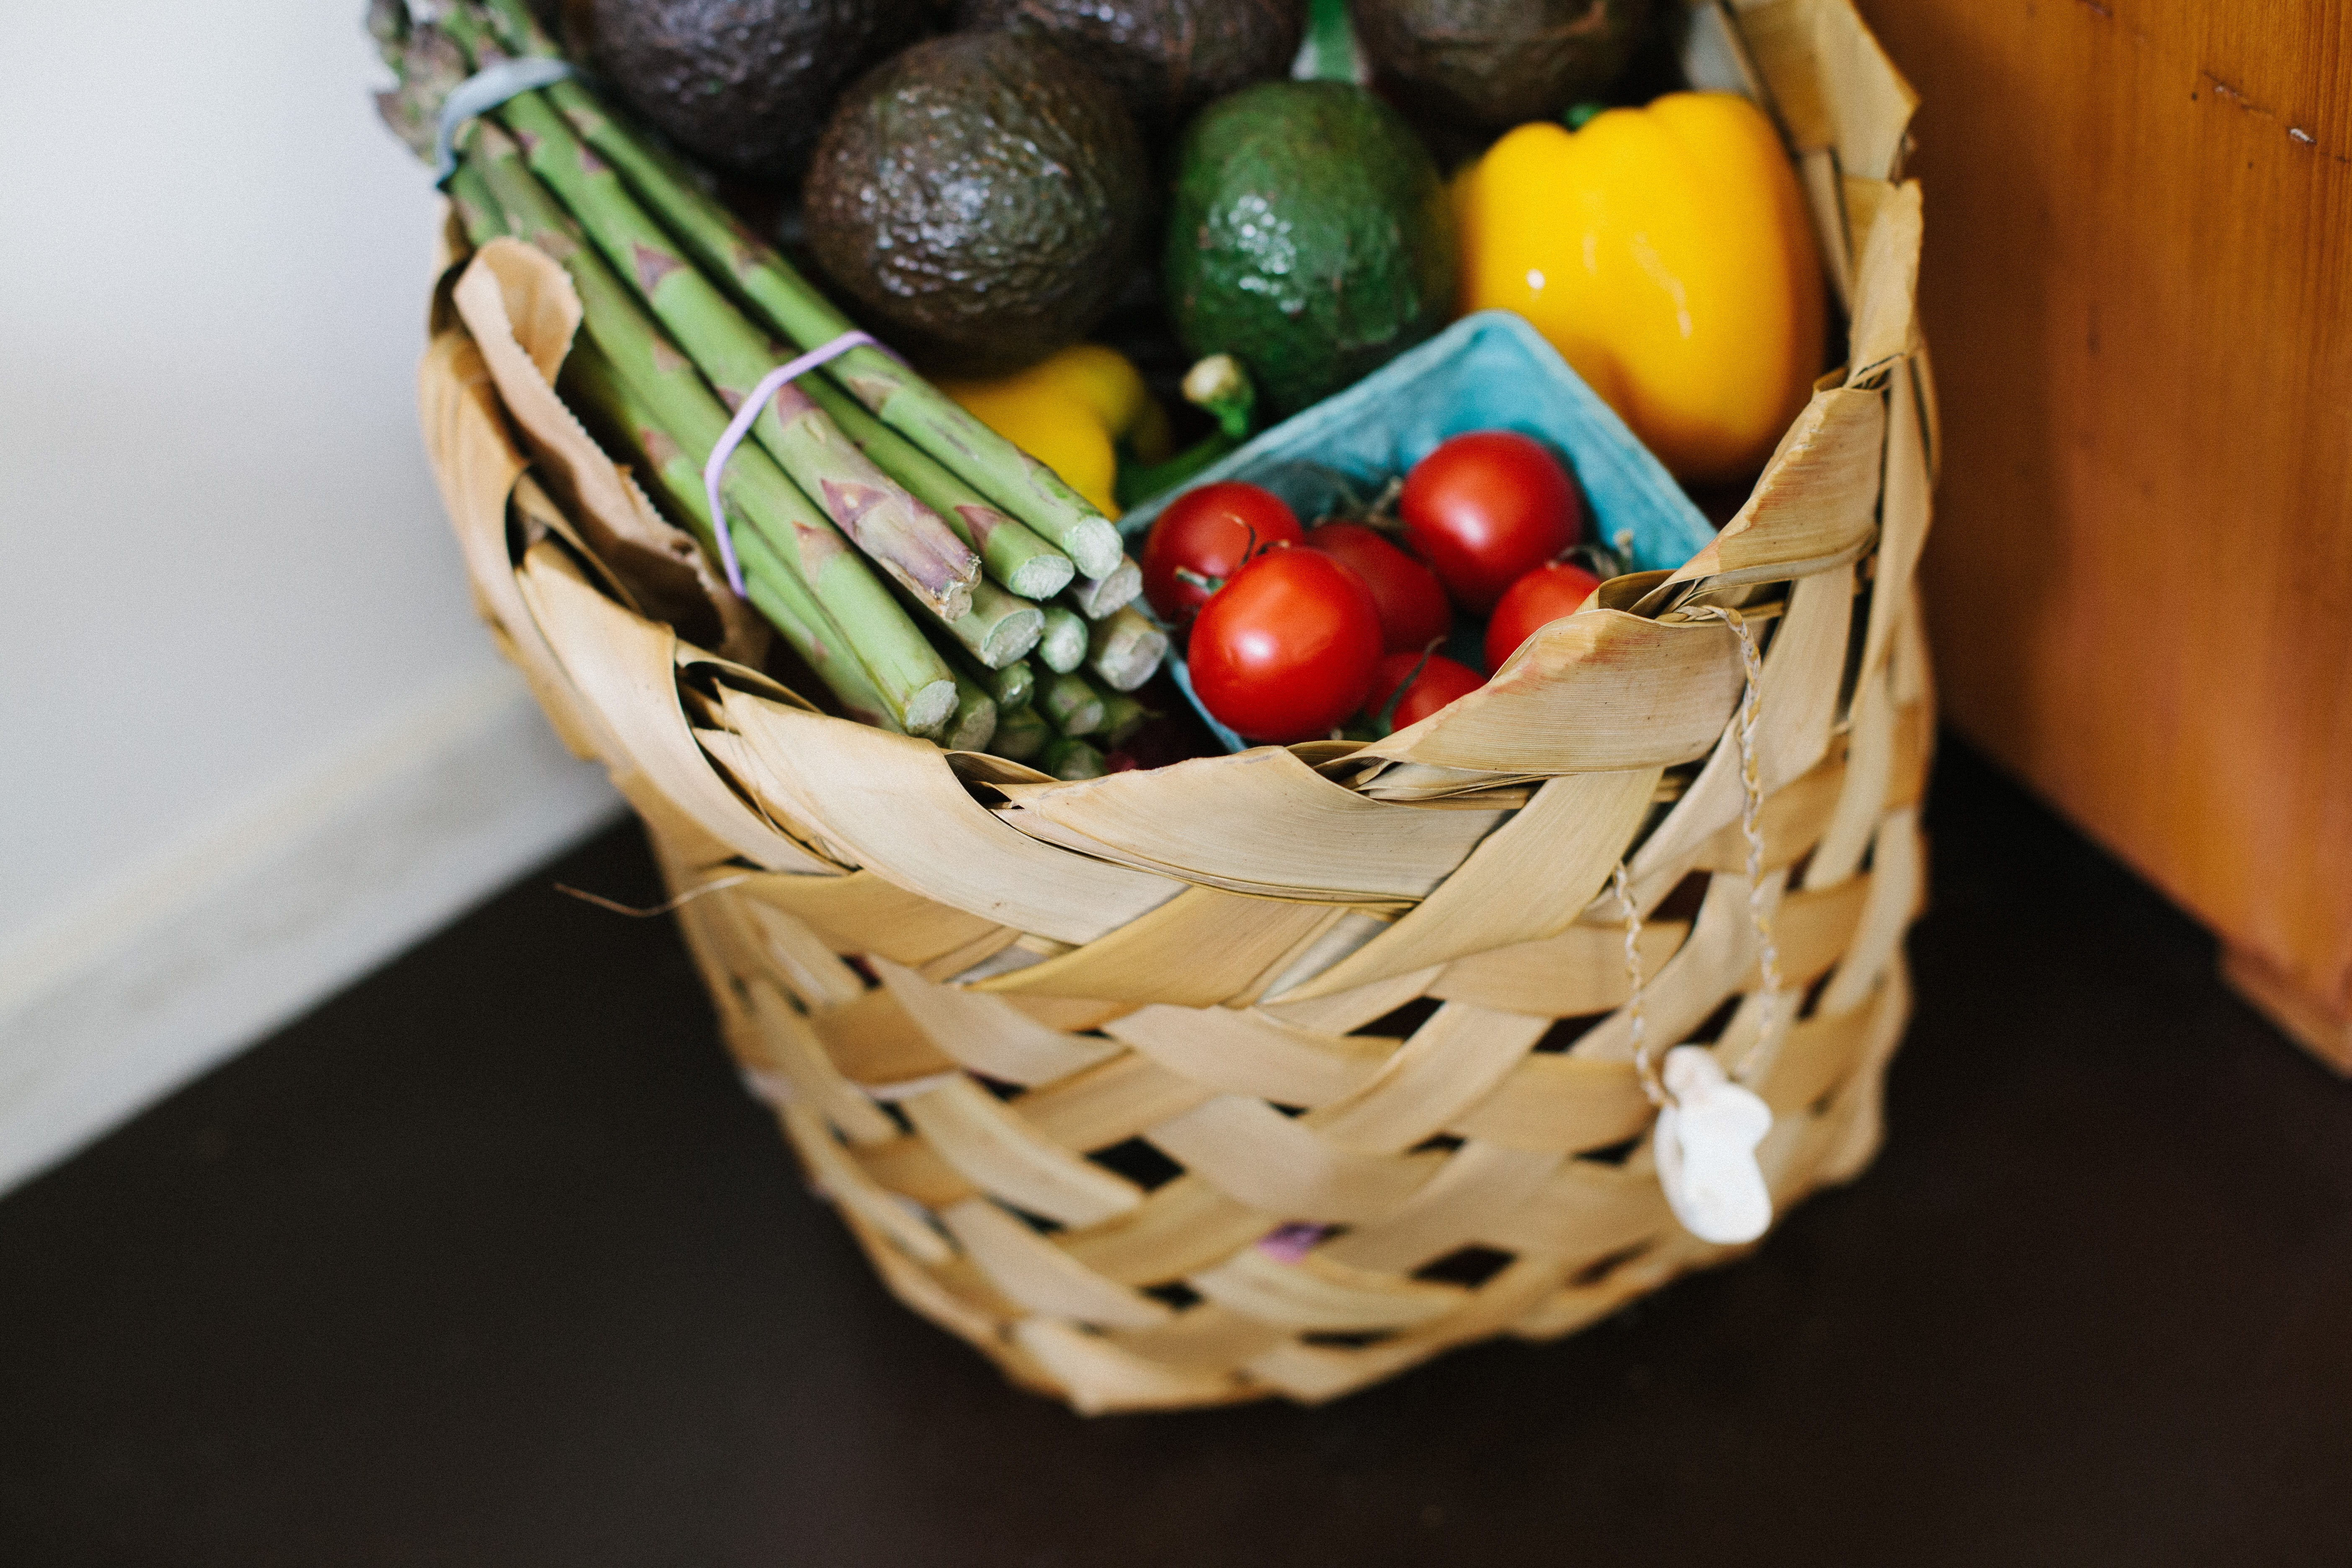 bunch of assorted produce in brown wicker basket